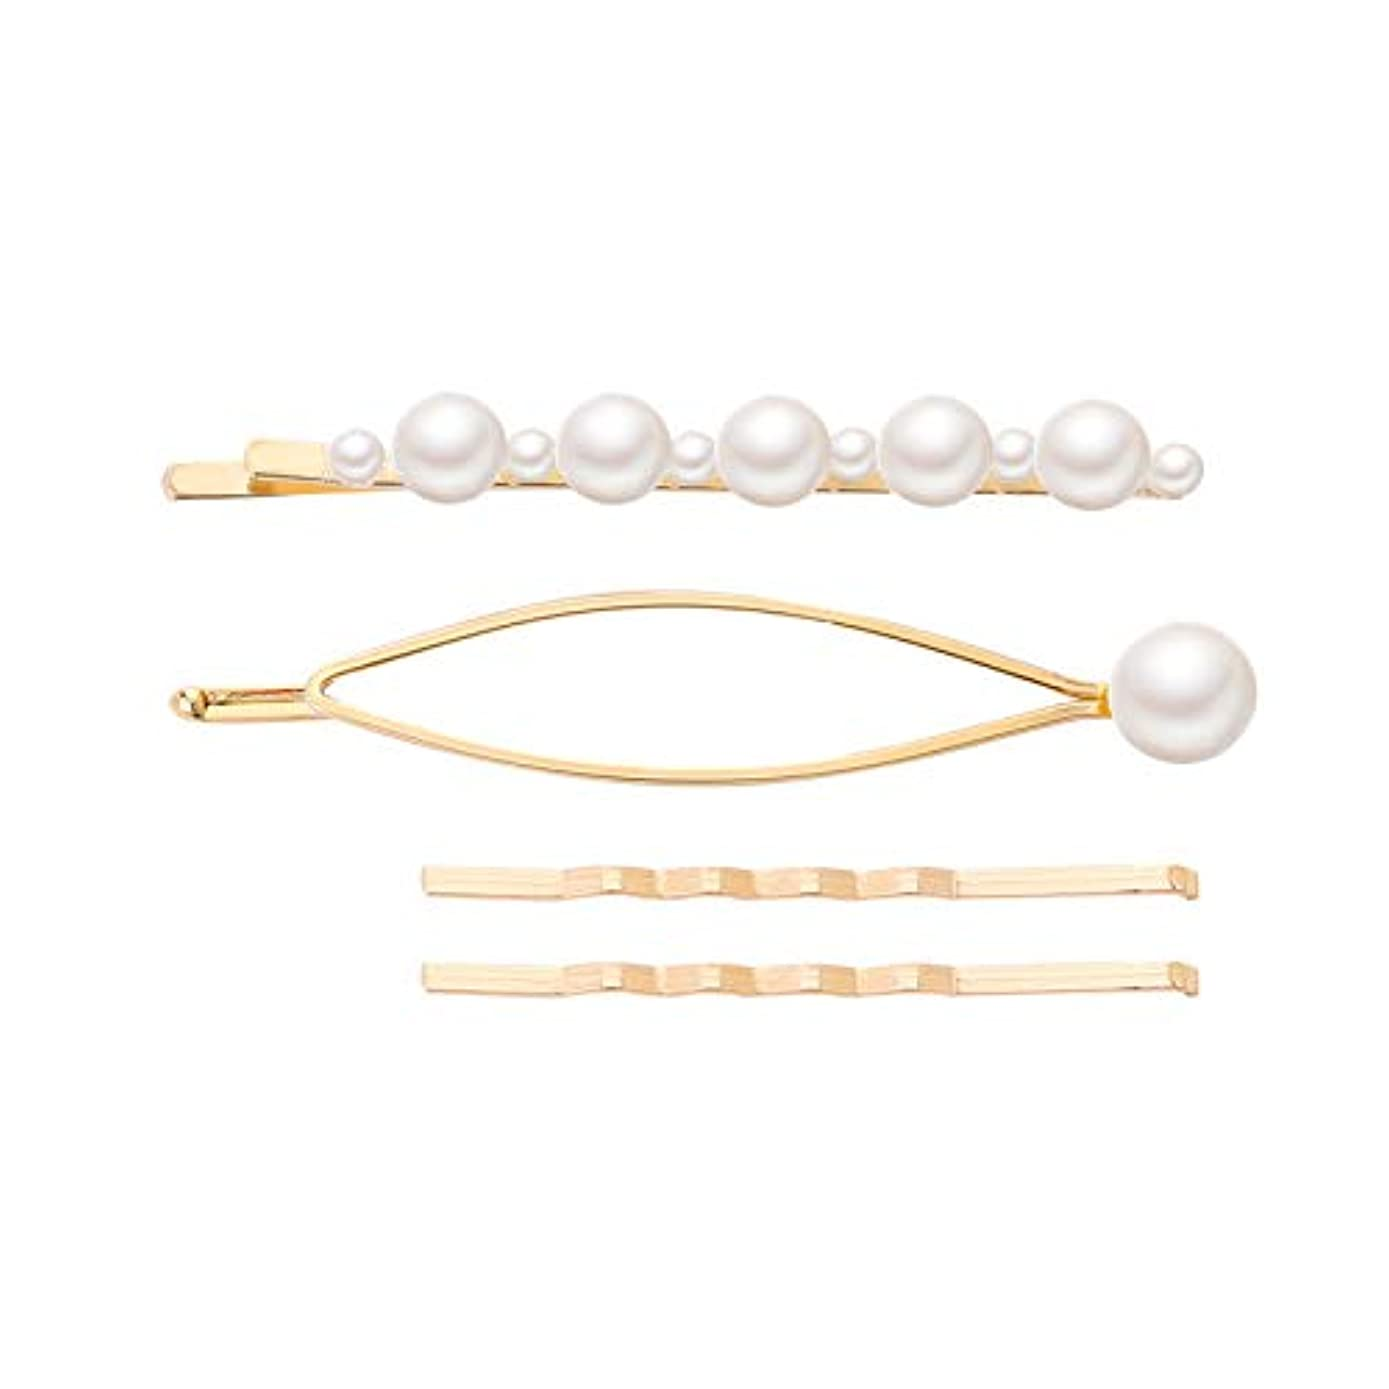 Cathy Clara INS Women's Cute Girl Pearl Beads Hairpin Hair Accessories Gift 4PC,Women Stylish Pearl Metal Hair Clip